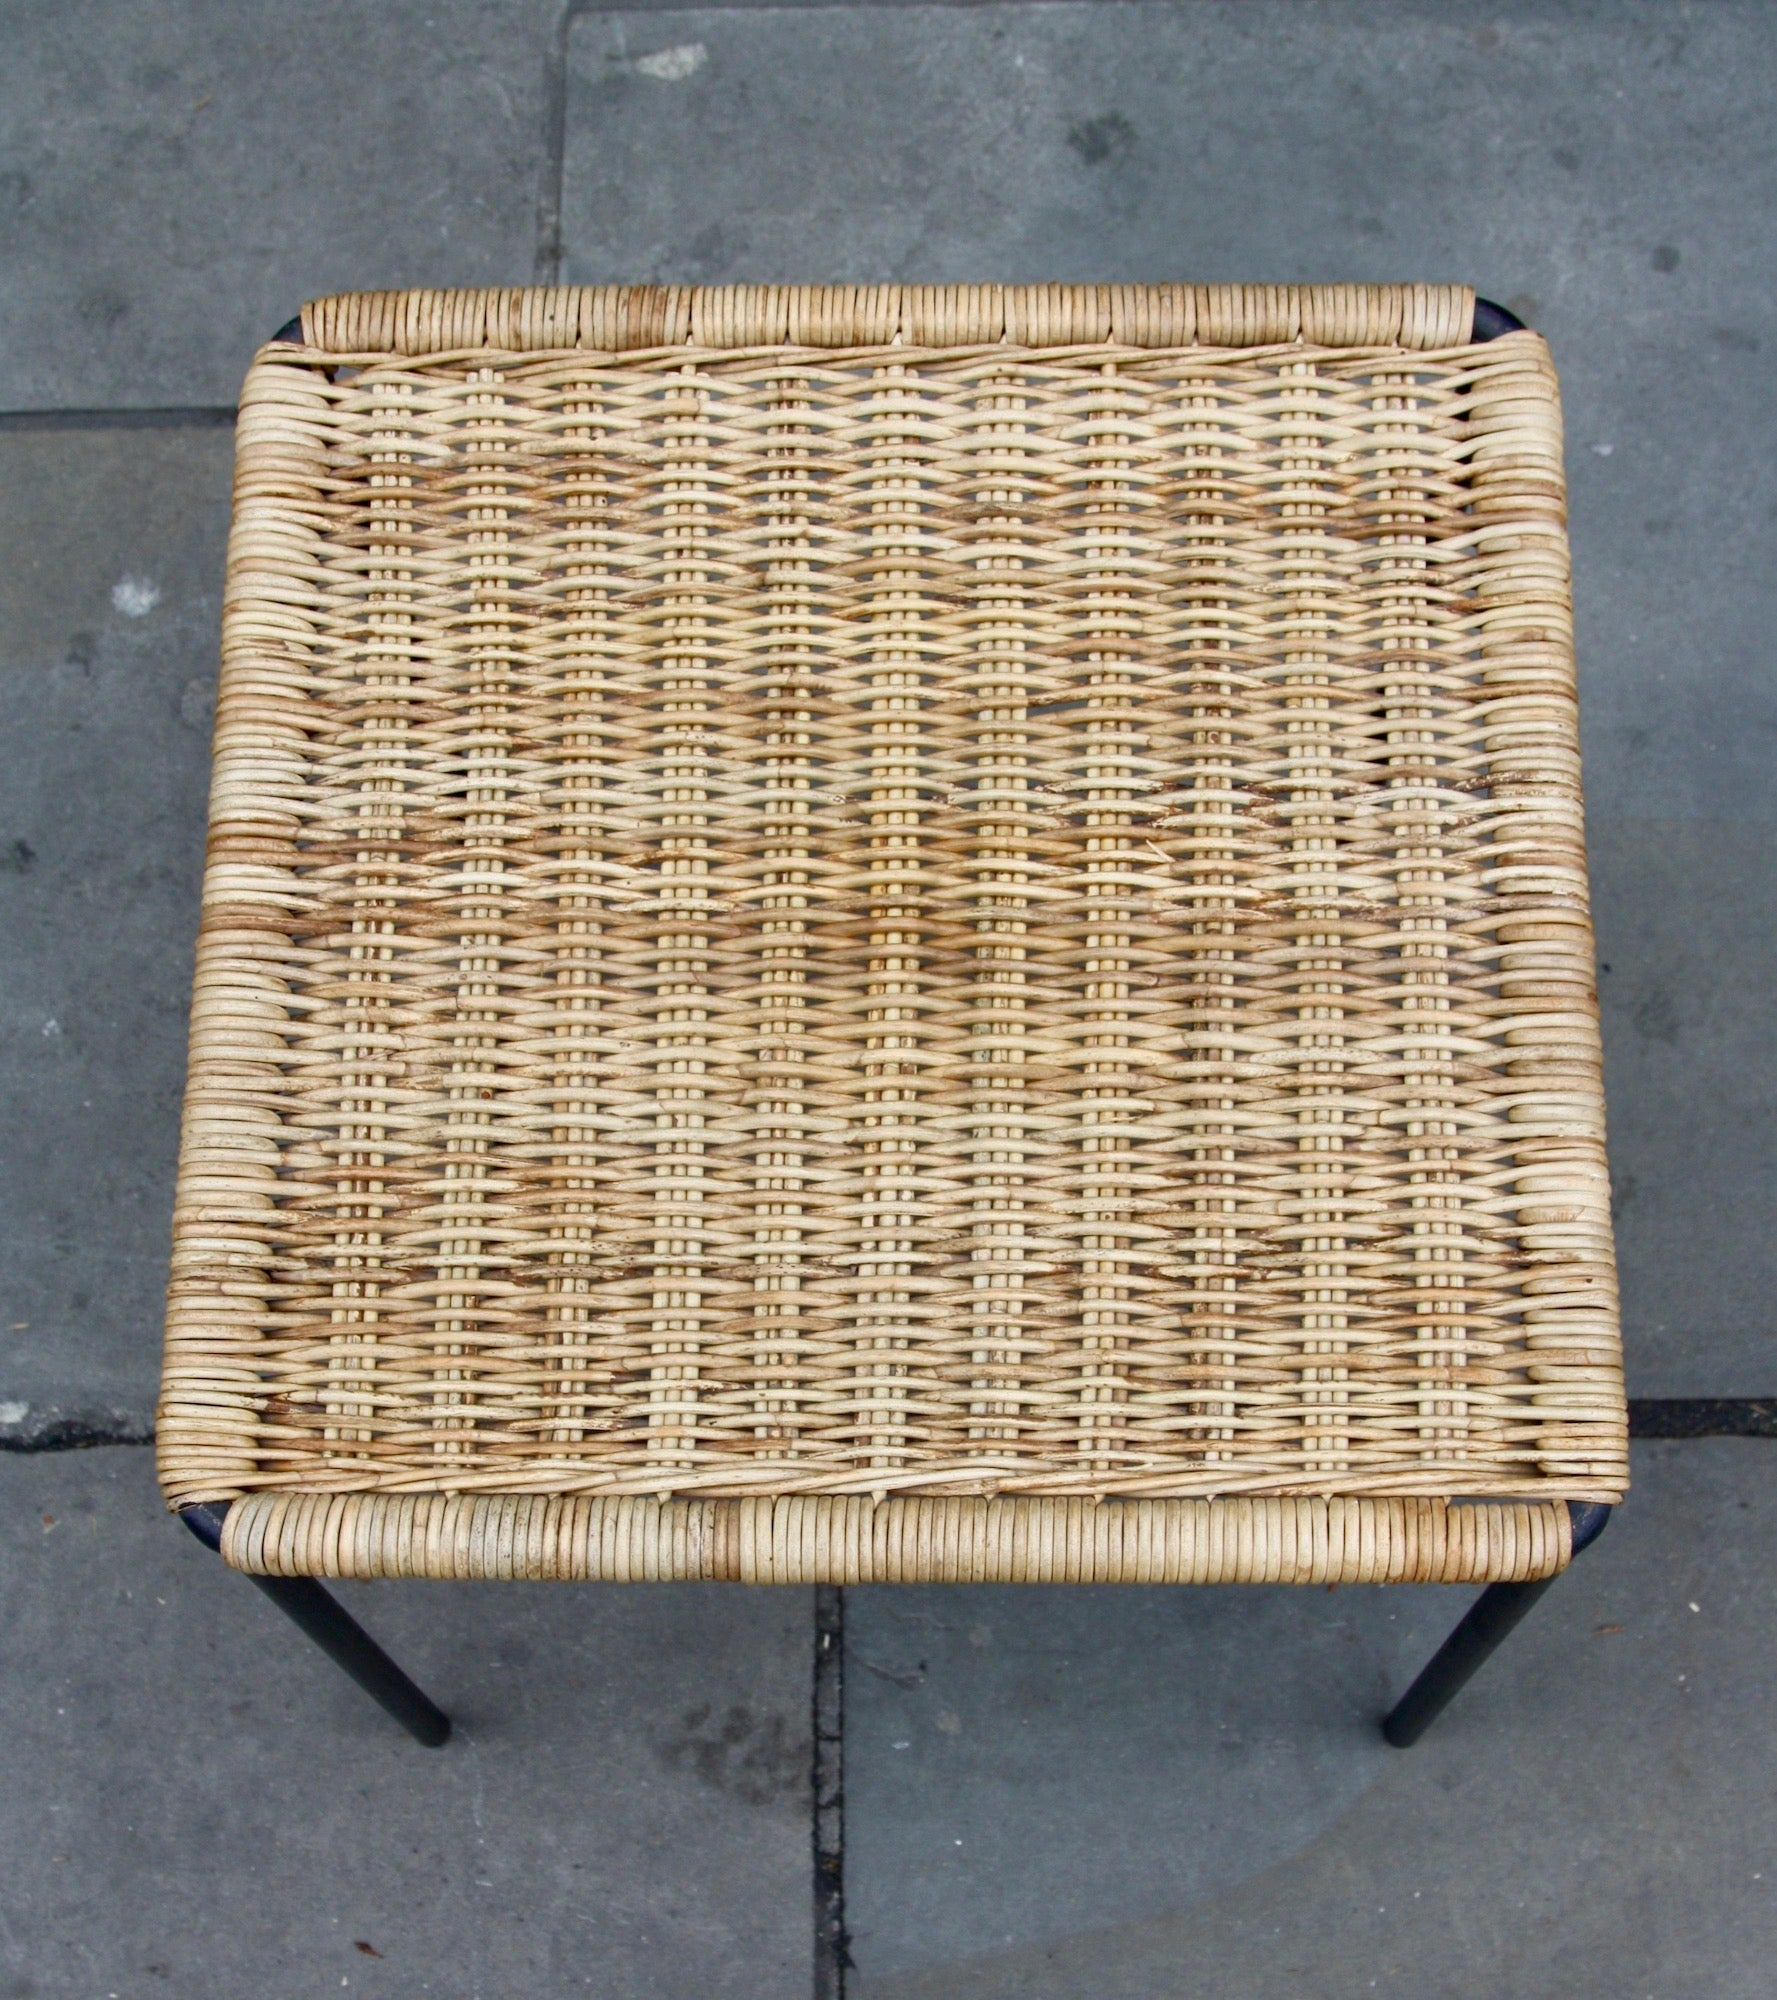 Square Wicker Table  Carl Auböck - Image 4